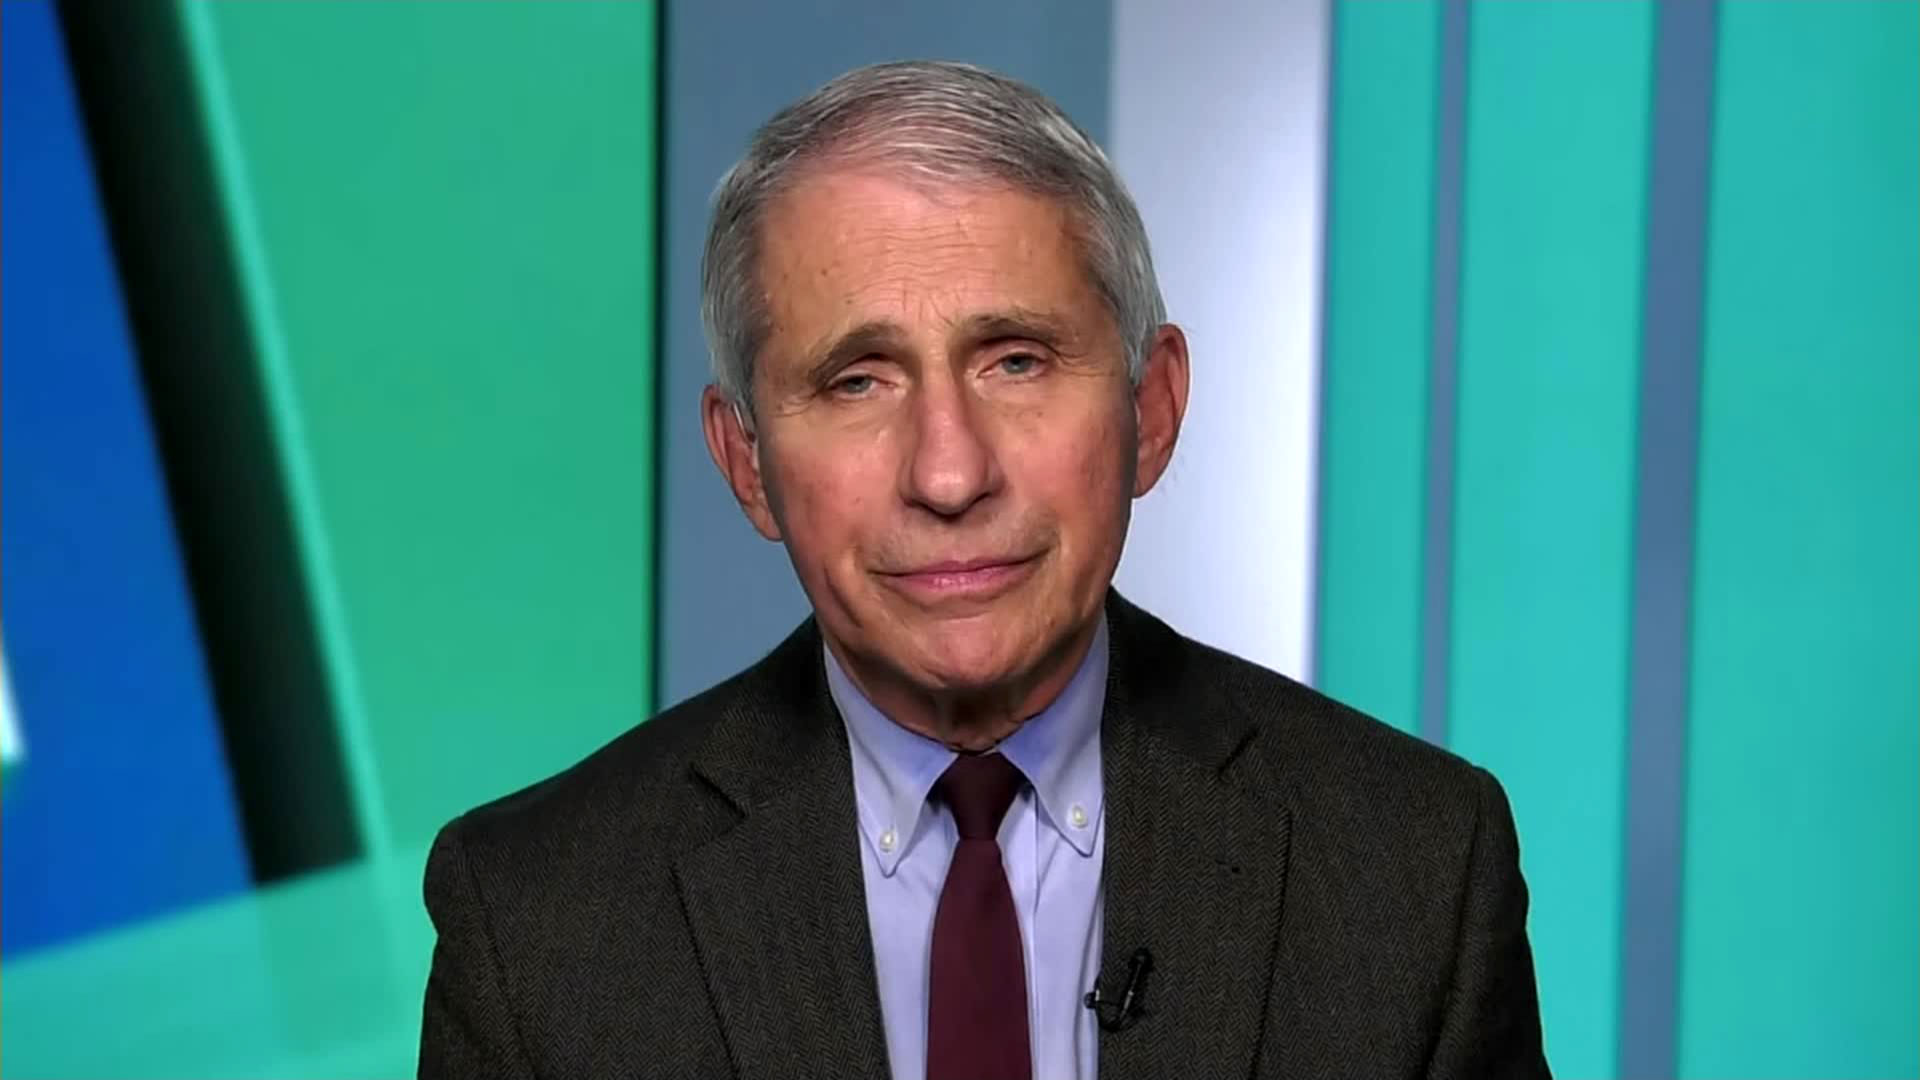 Dr. Anthony Fauci speaks with CNN on Monday, October 12.